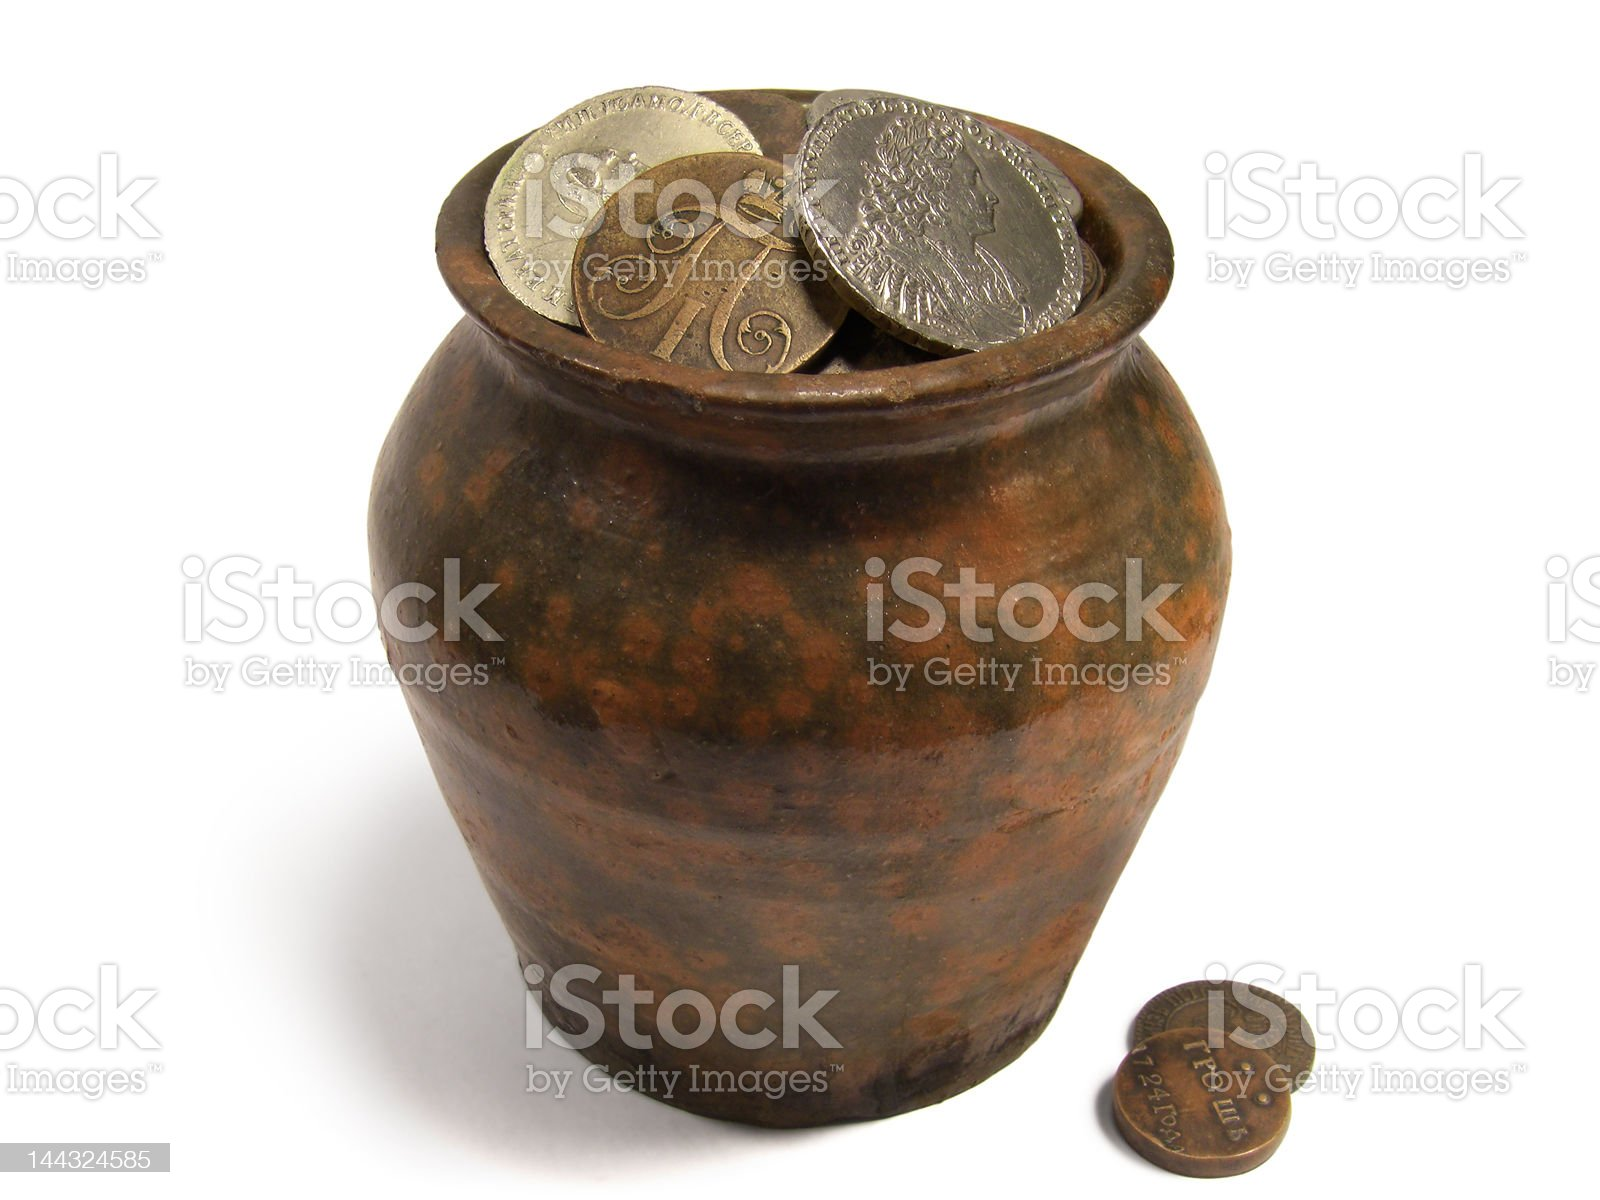 Jug of Old Coins royalty-free stock photo